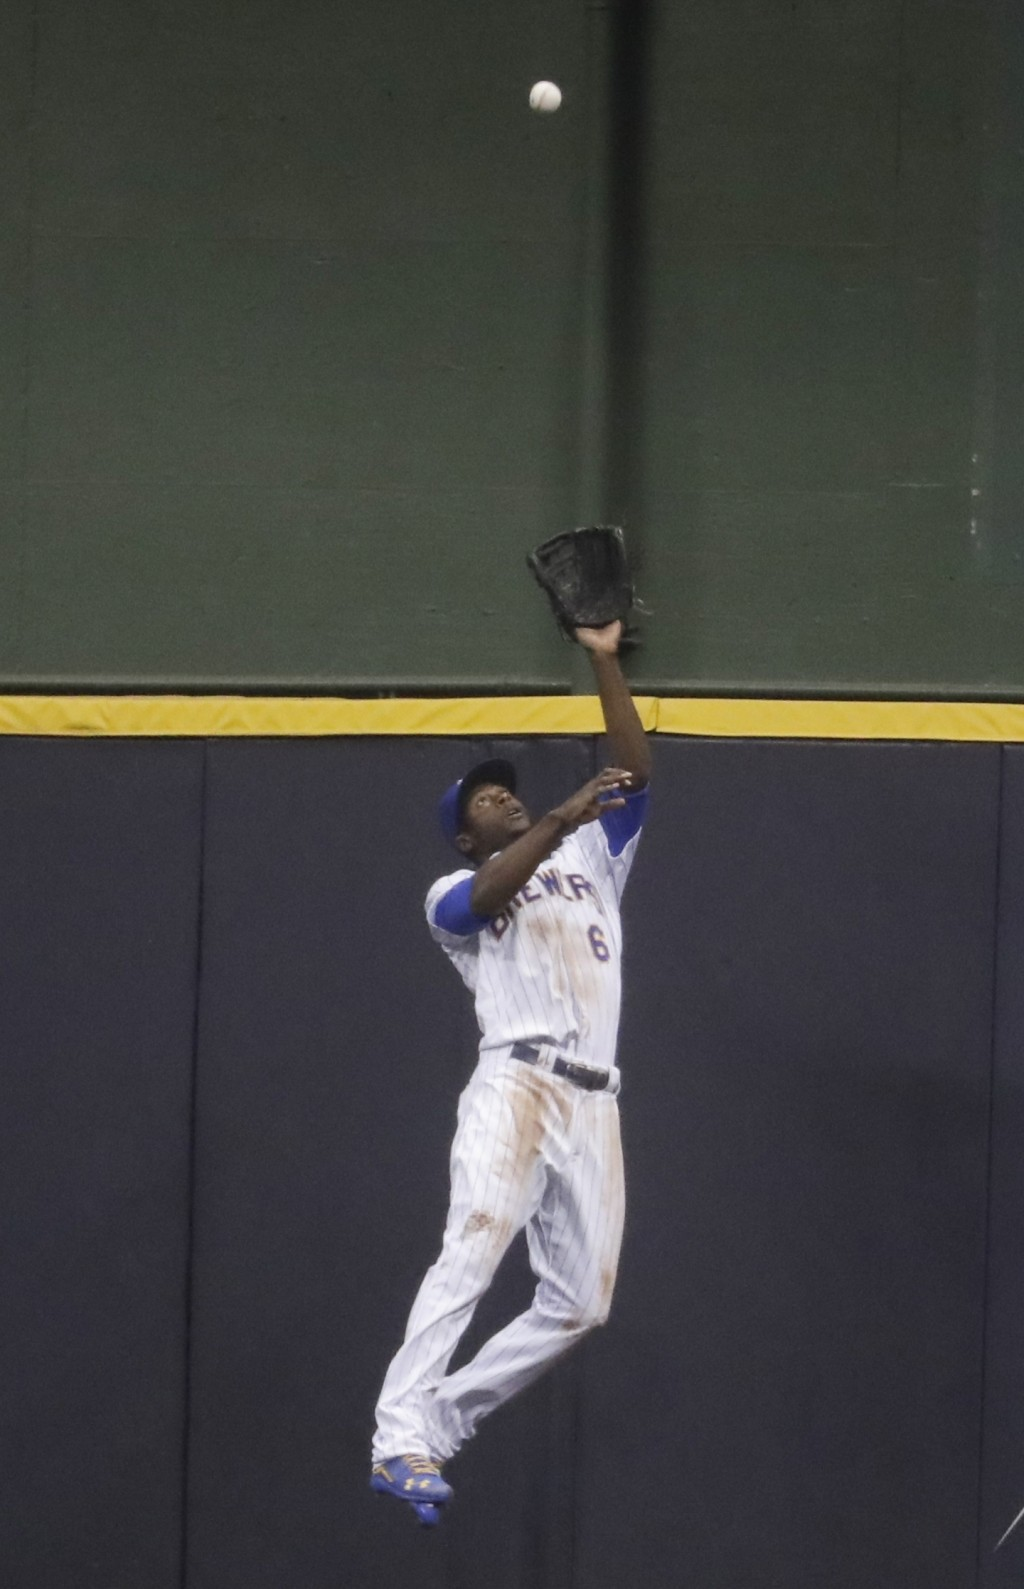 Milwaukee Brewers' Lorenzo Cain makes a catch at the wall on a ball hit by Pittsburgh Pirates' Jordy Mercer during the second inning of a baseball gam